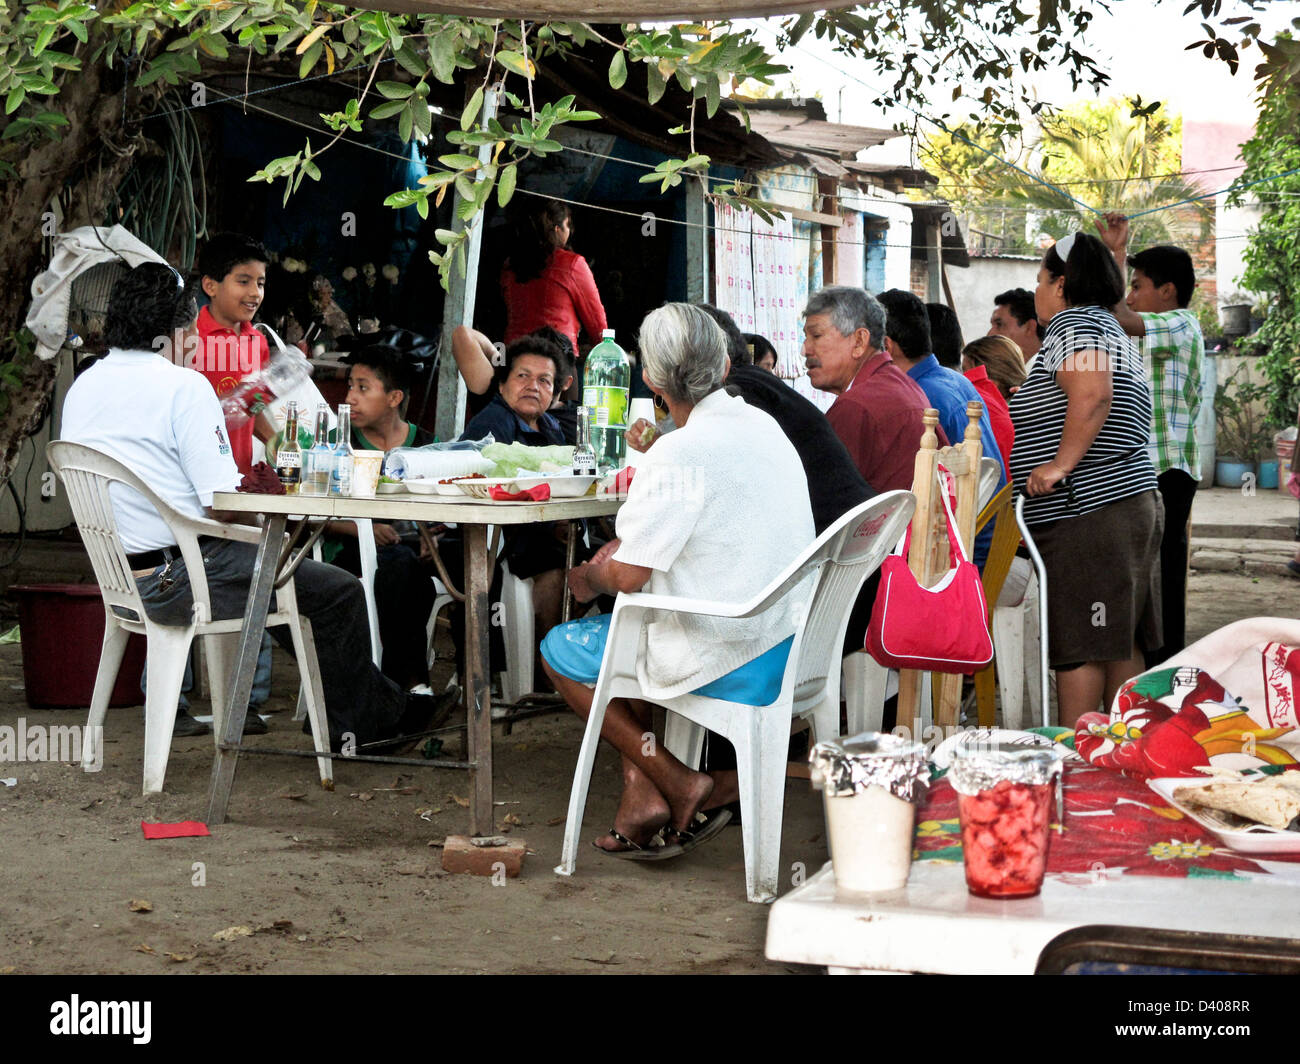 4 generations of a Mexican family enjoy Sunday afternoon comida meal together in courtyard of their home Oaxaca - Stock Image